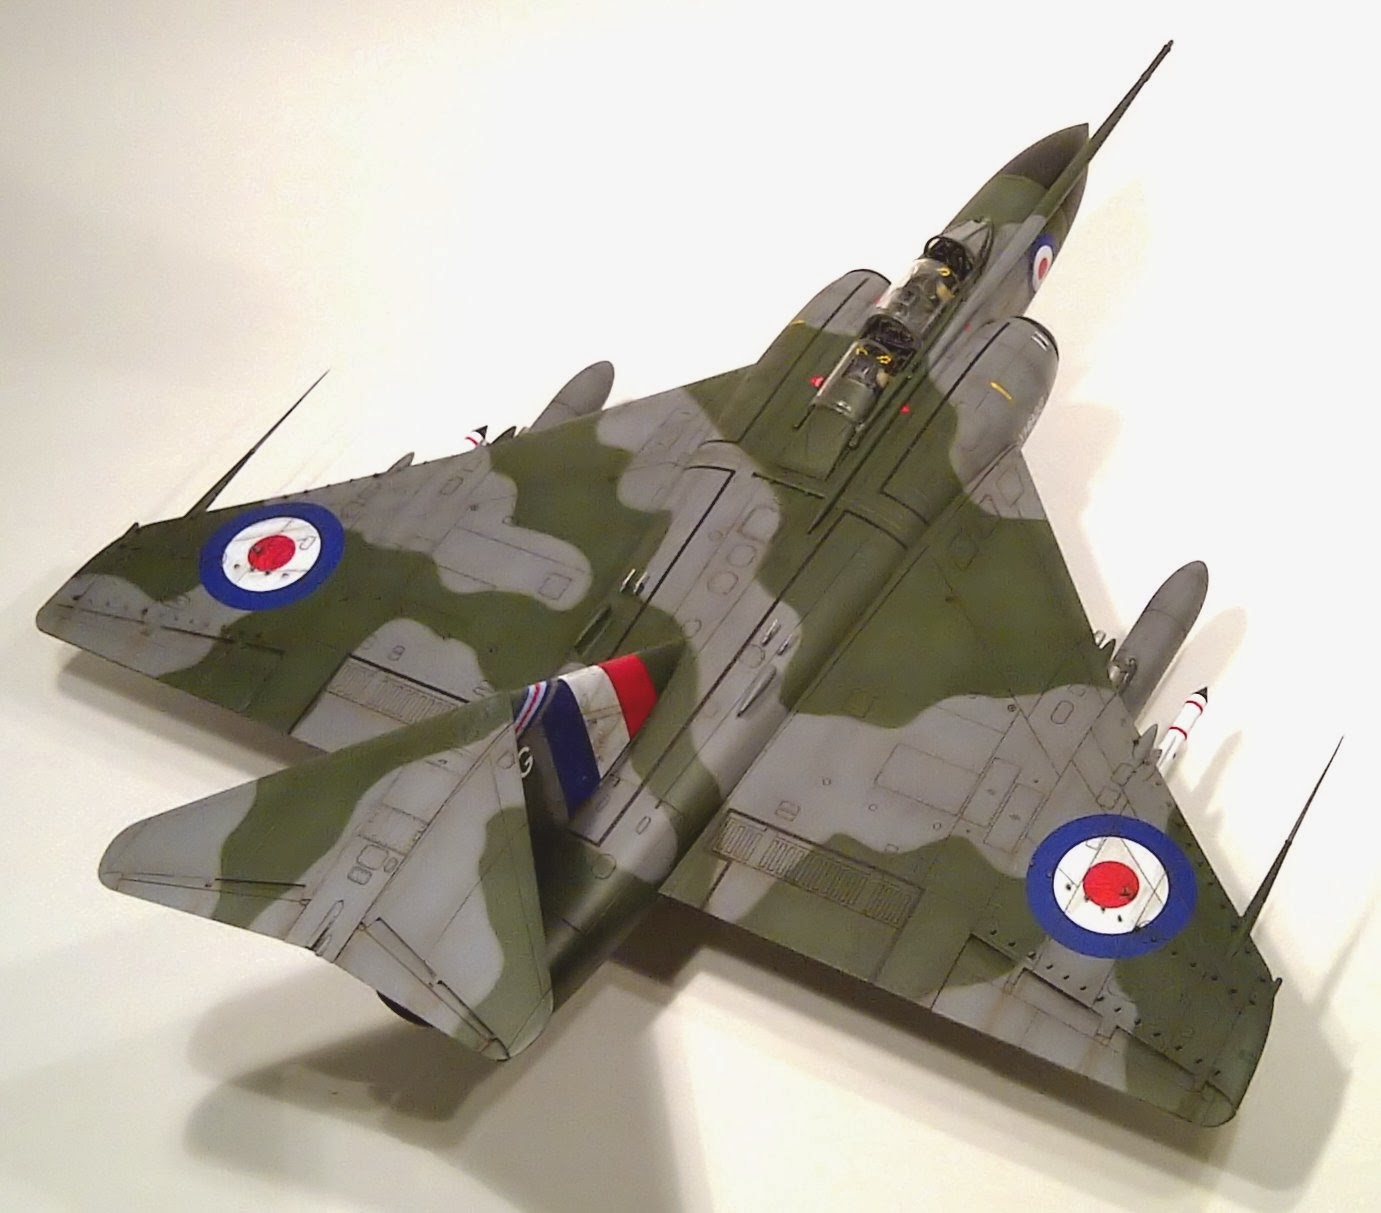 bowemodels build review airfix 1 48 gloster javelin faw 9 9r. Black Bedroom Furniture Sets. Home Design Ideas